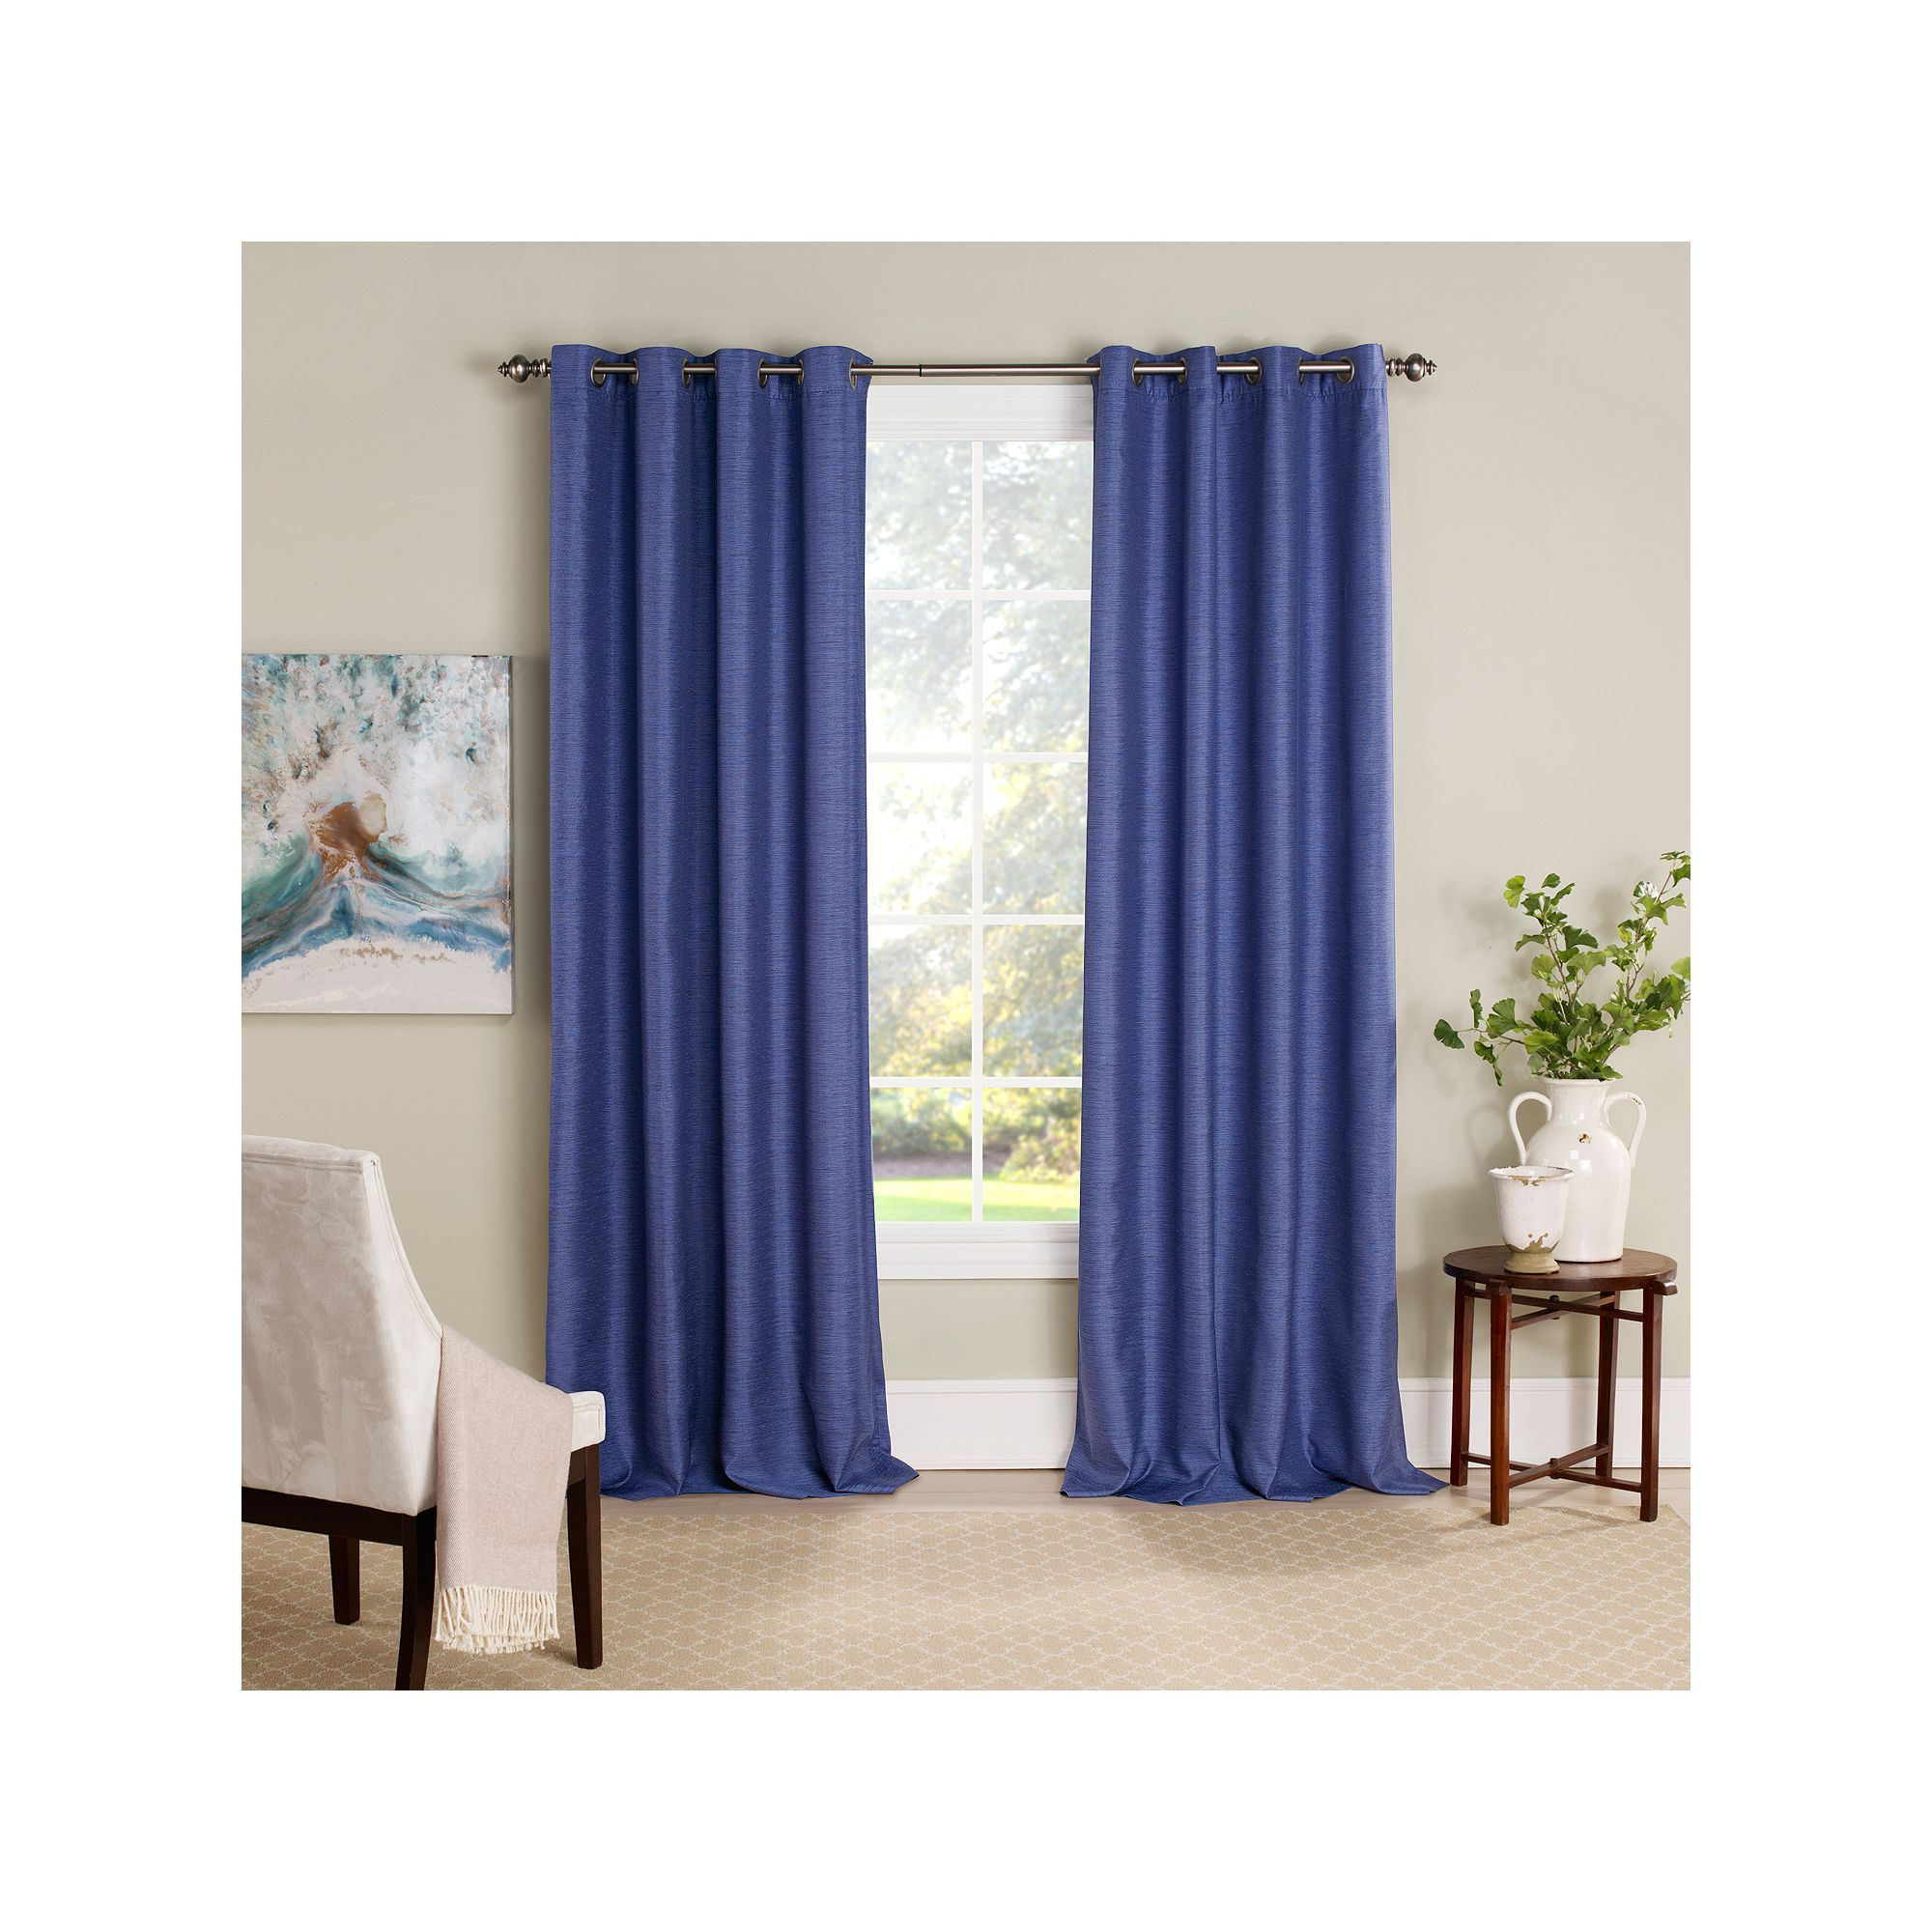 Eclipse Newport Blackout Curtain Panels With 2021 Eclipse Newport Blackout Window Curtain (View 14 of 20)